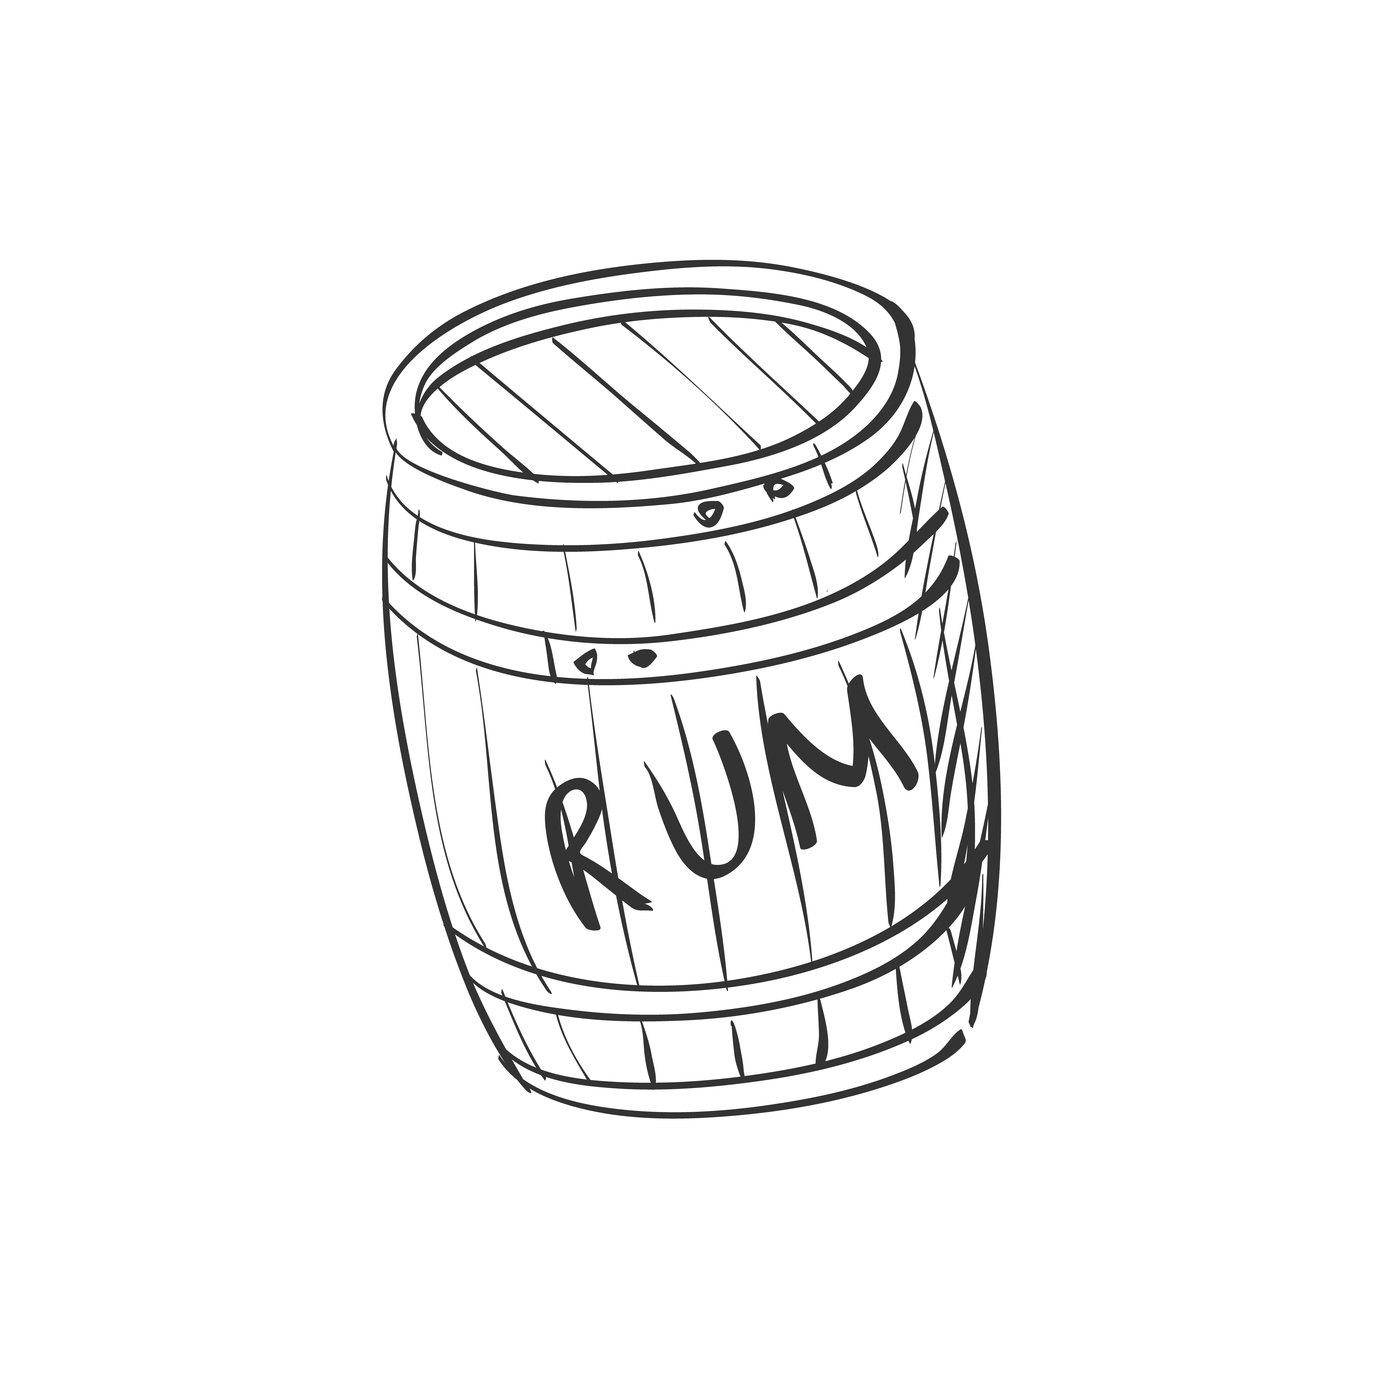 Where is the Love for Rum